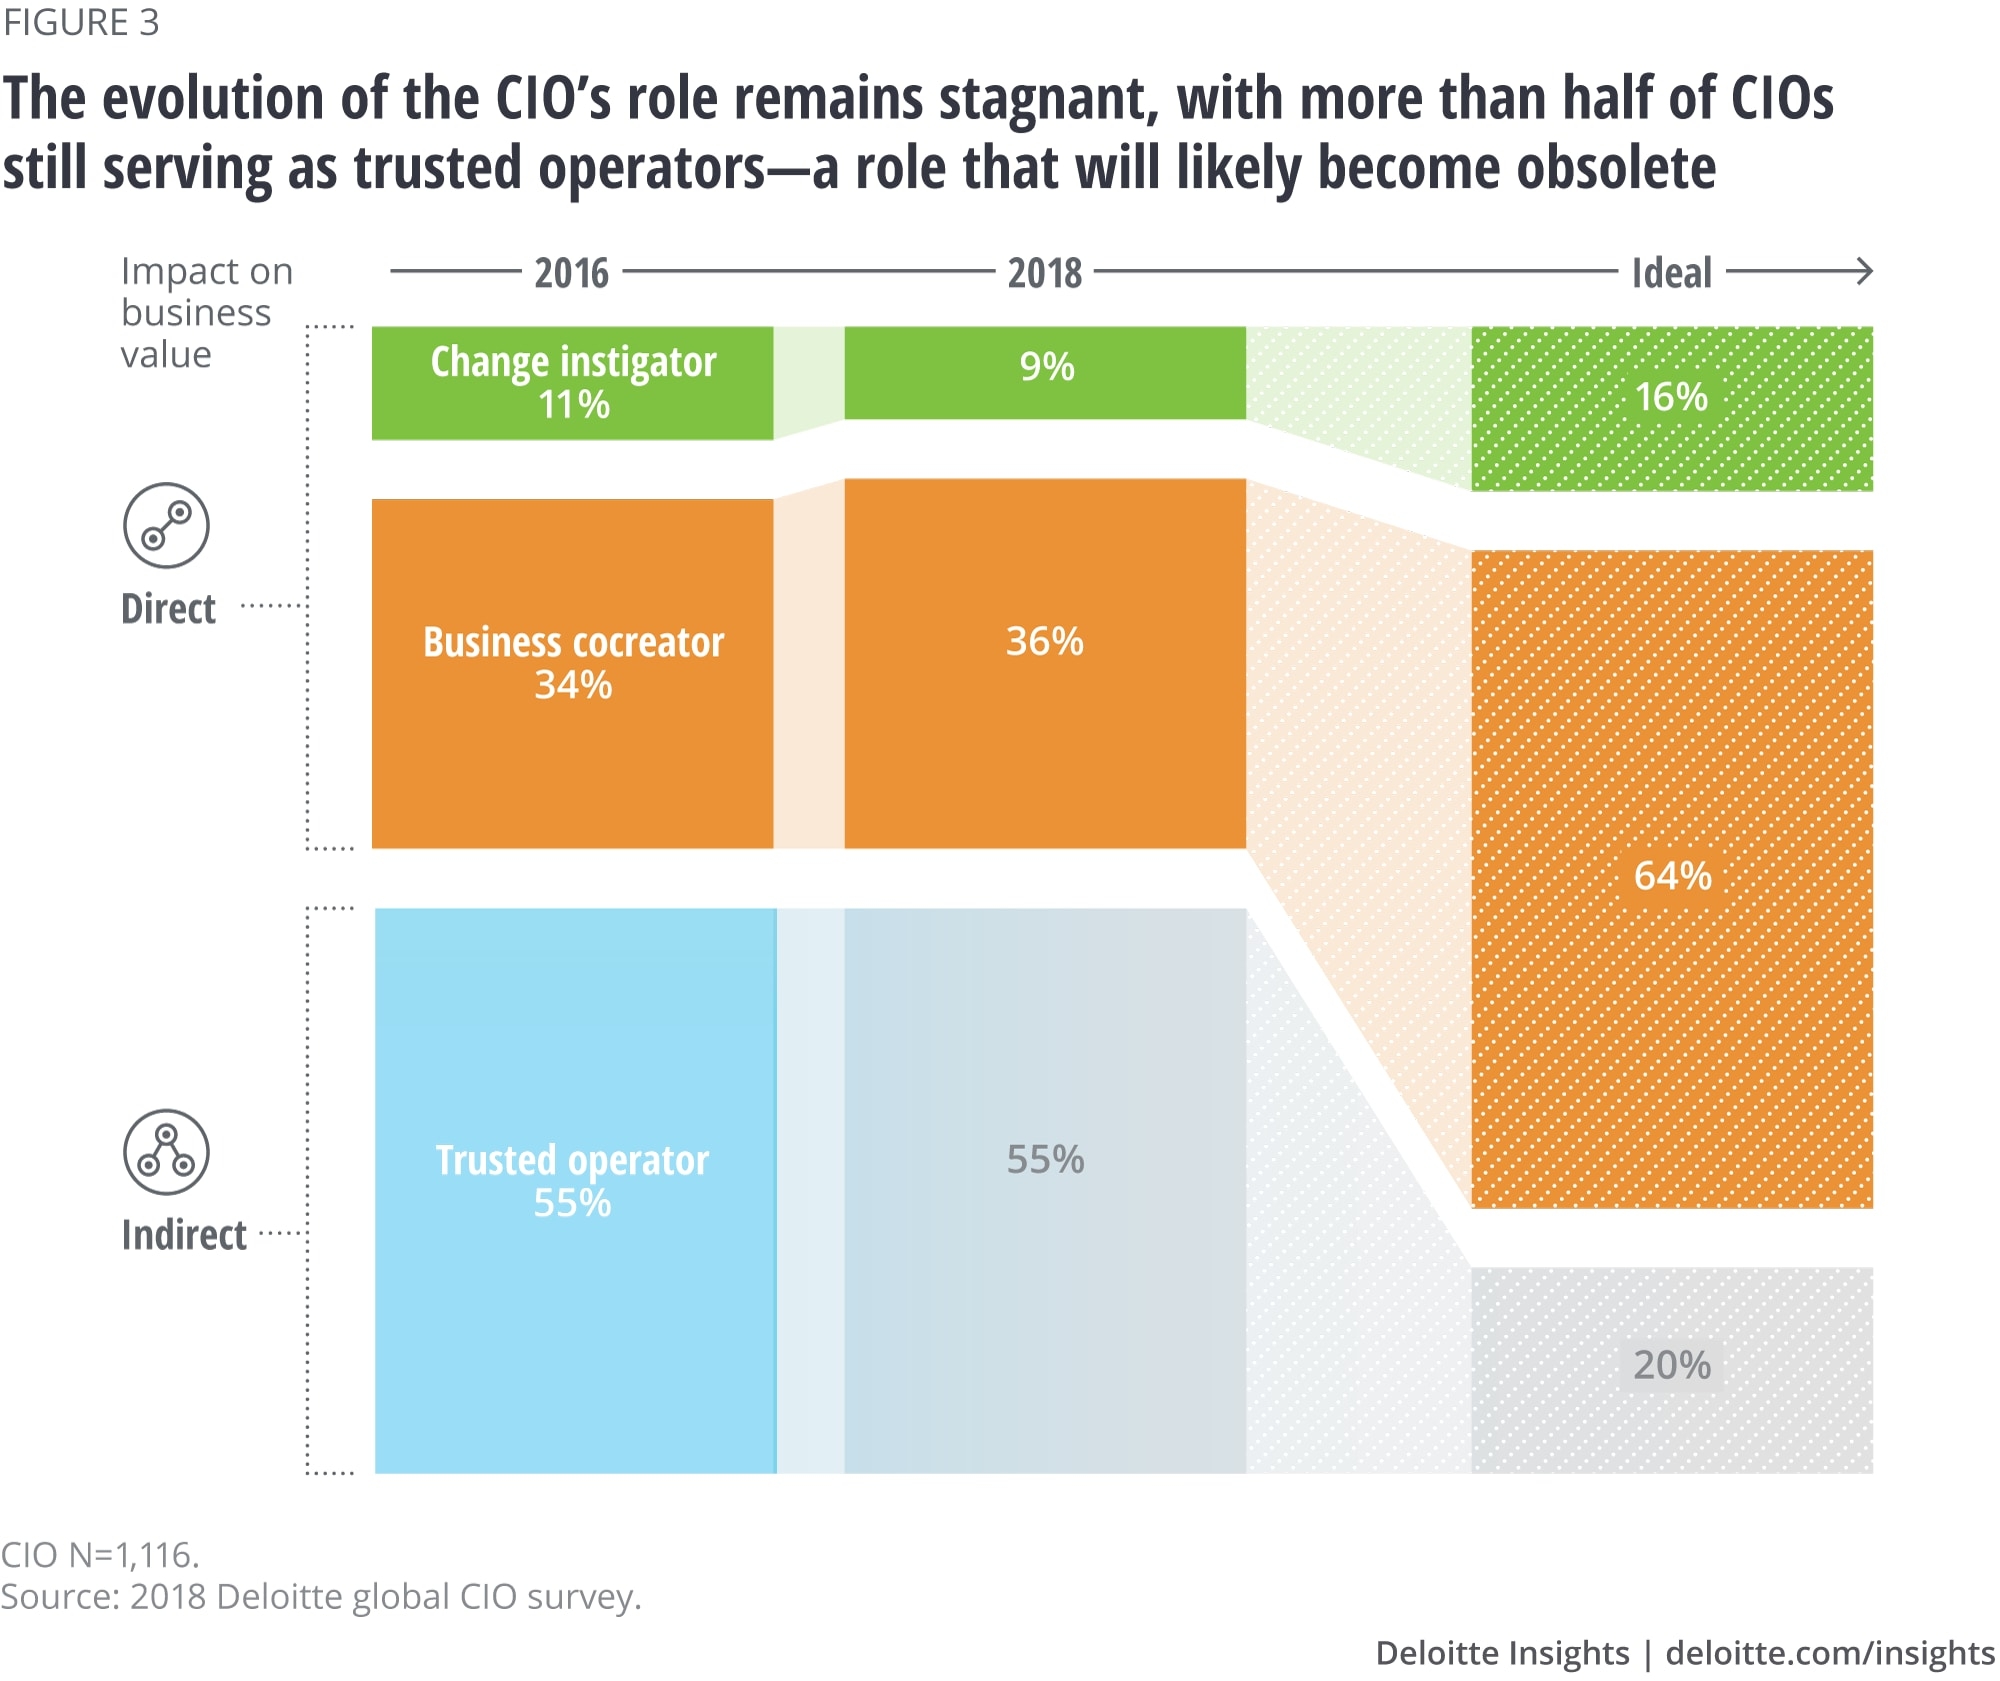 The evolution of the CIO's role remains stagnant, with more than half of CIOs still serving as trusted operators—a role that will likely become obsolete